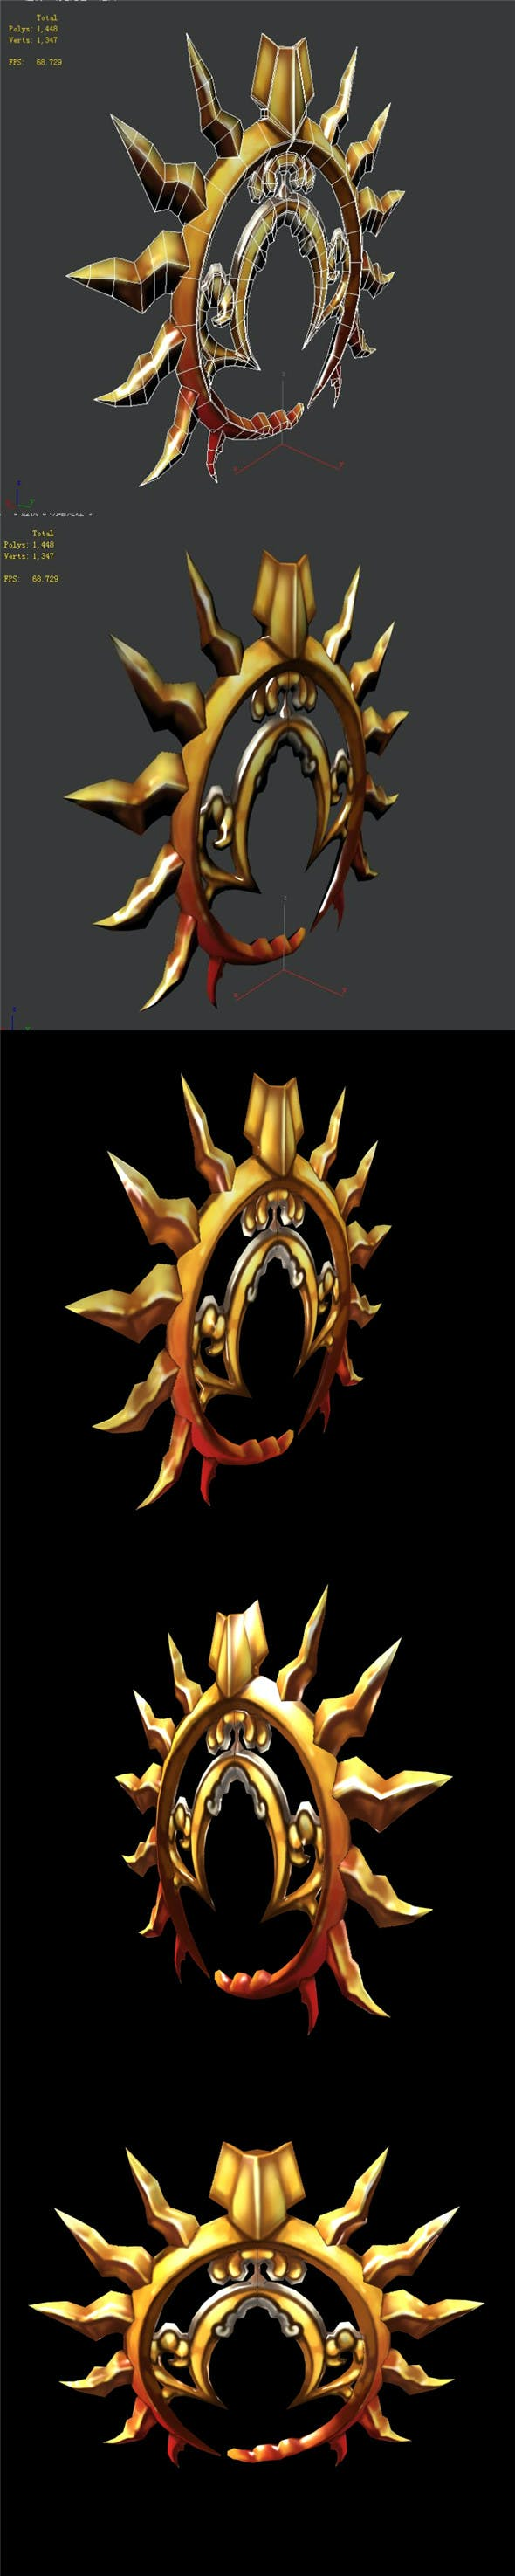 Game characters weapons - two days sun and the moon - 3DOcean Item for Sale